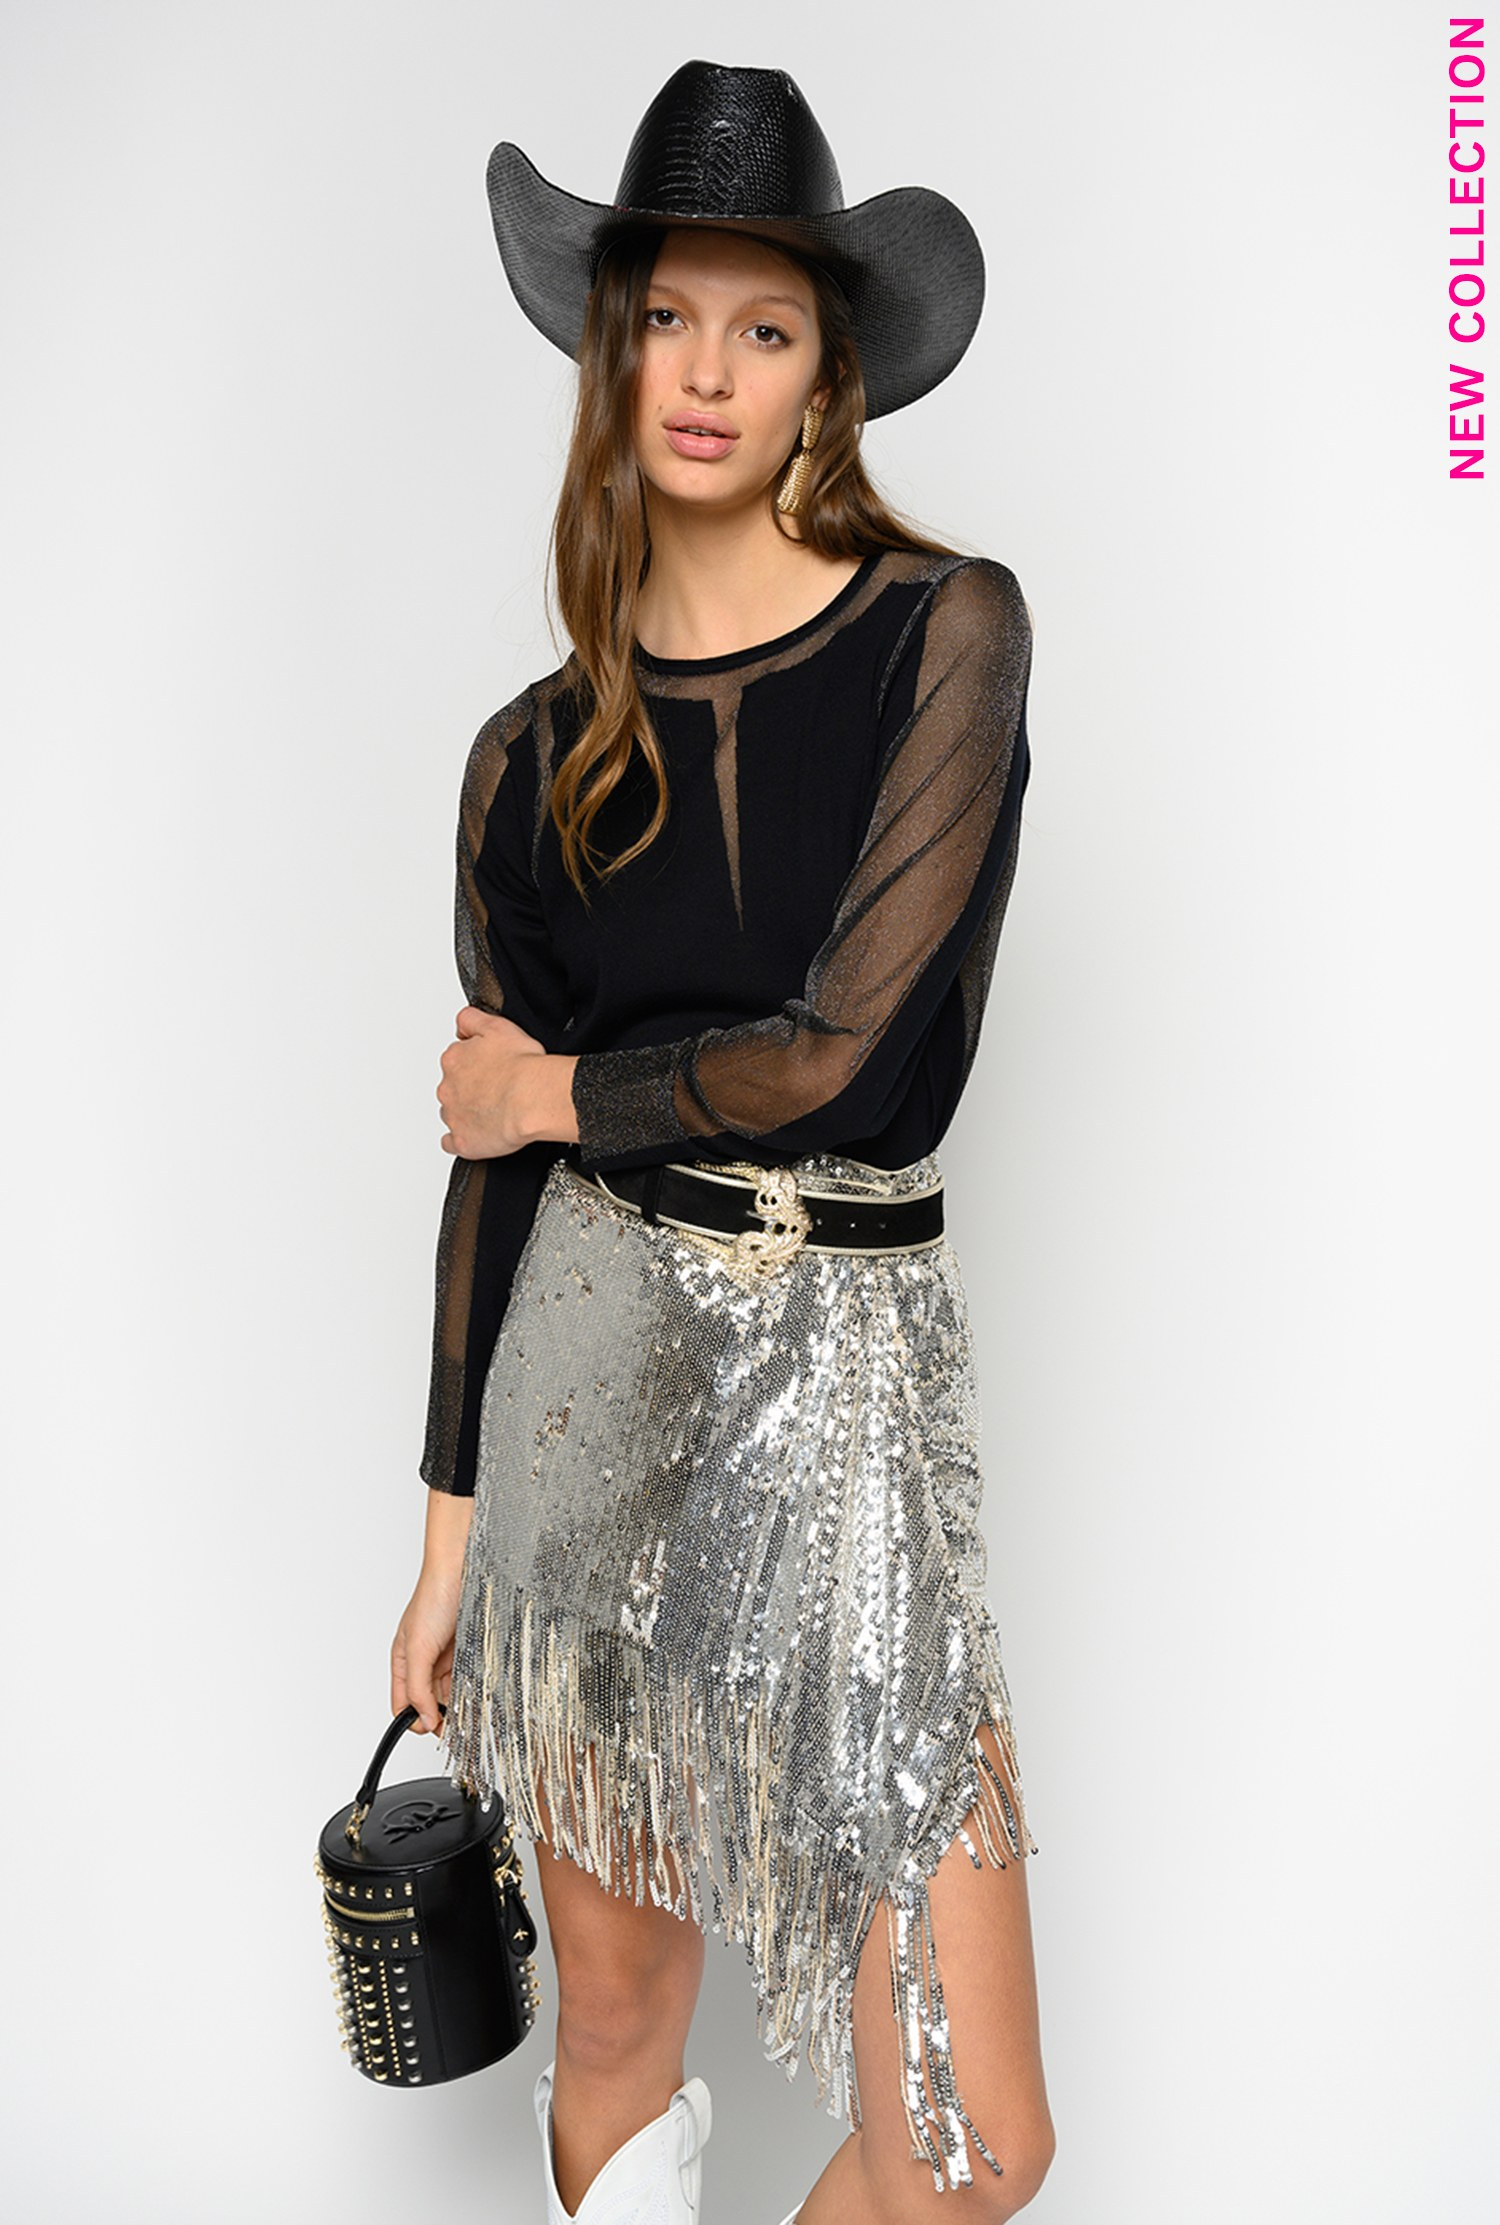 SHOPPING ON LINE PINKO MINIGONNA IN FULL PAILLETTES CON FRANGE RATATOUILLE NEW COLLECTION WOMEN'S SPRING SUMMER 2020